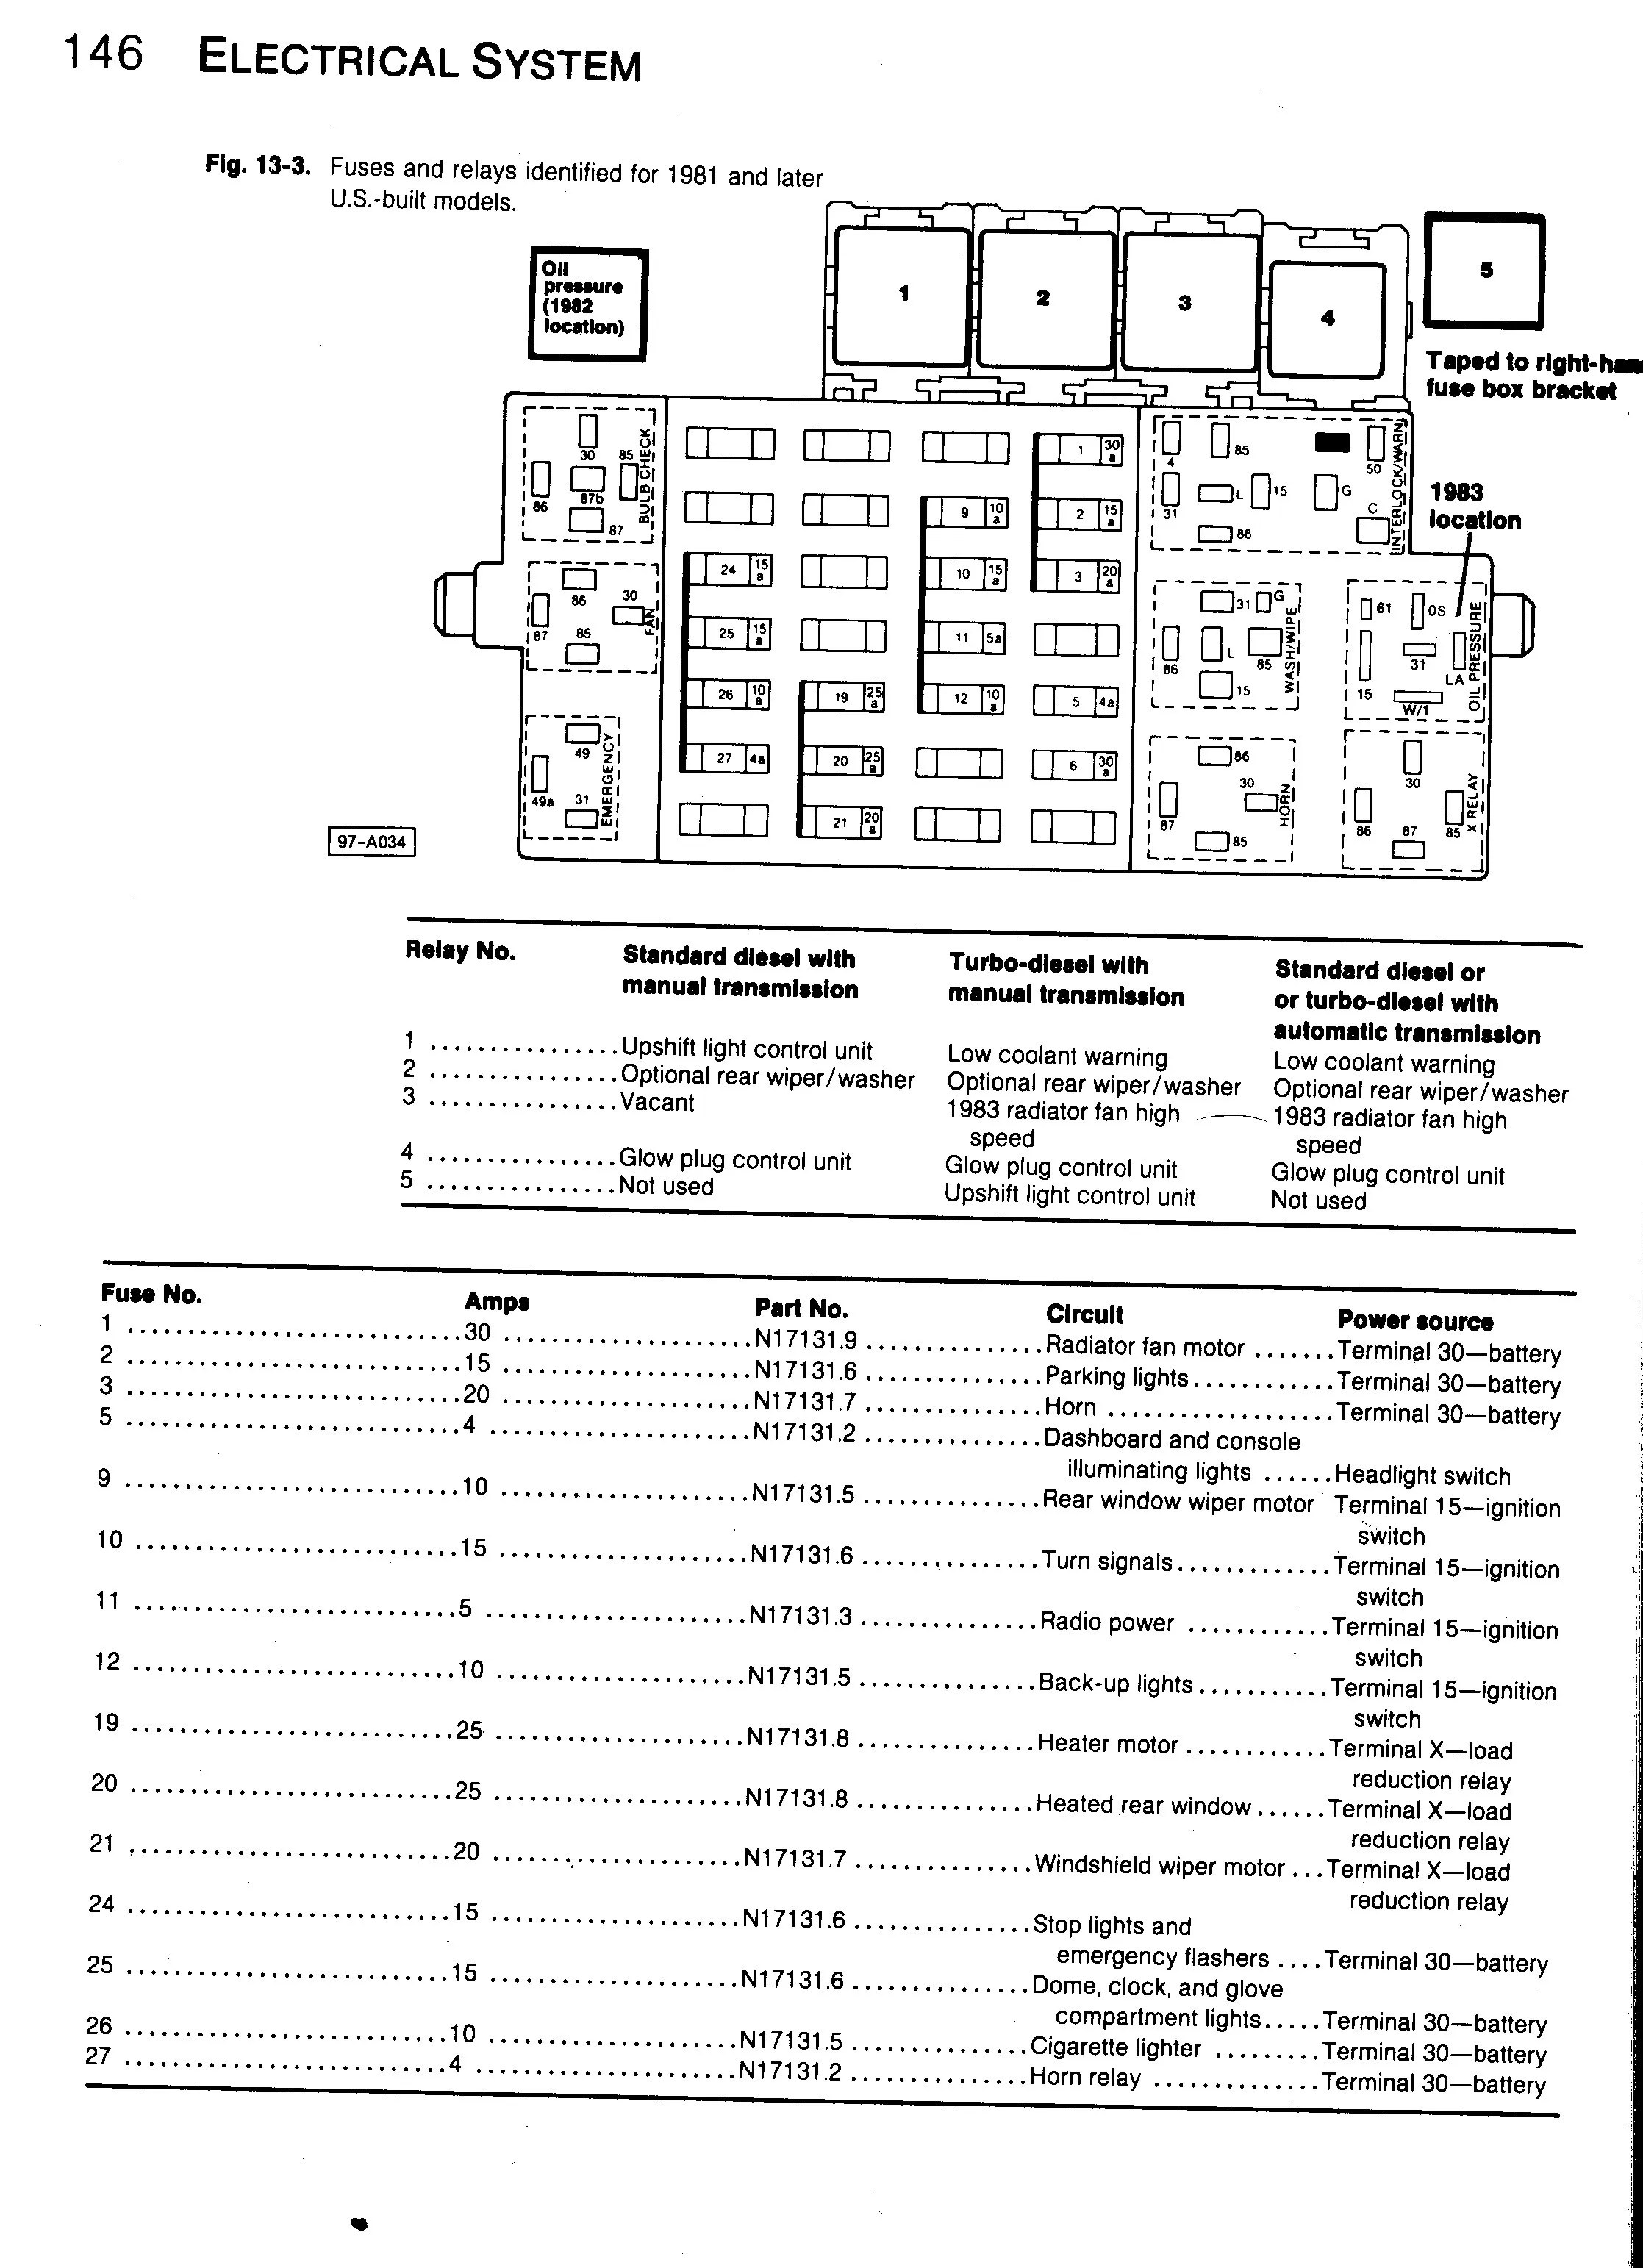 2009 vw routan fuse box diagram